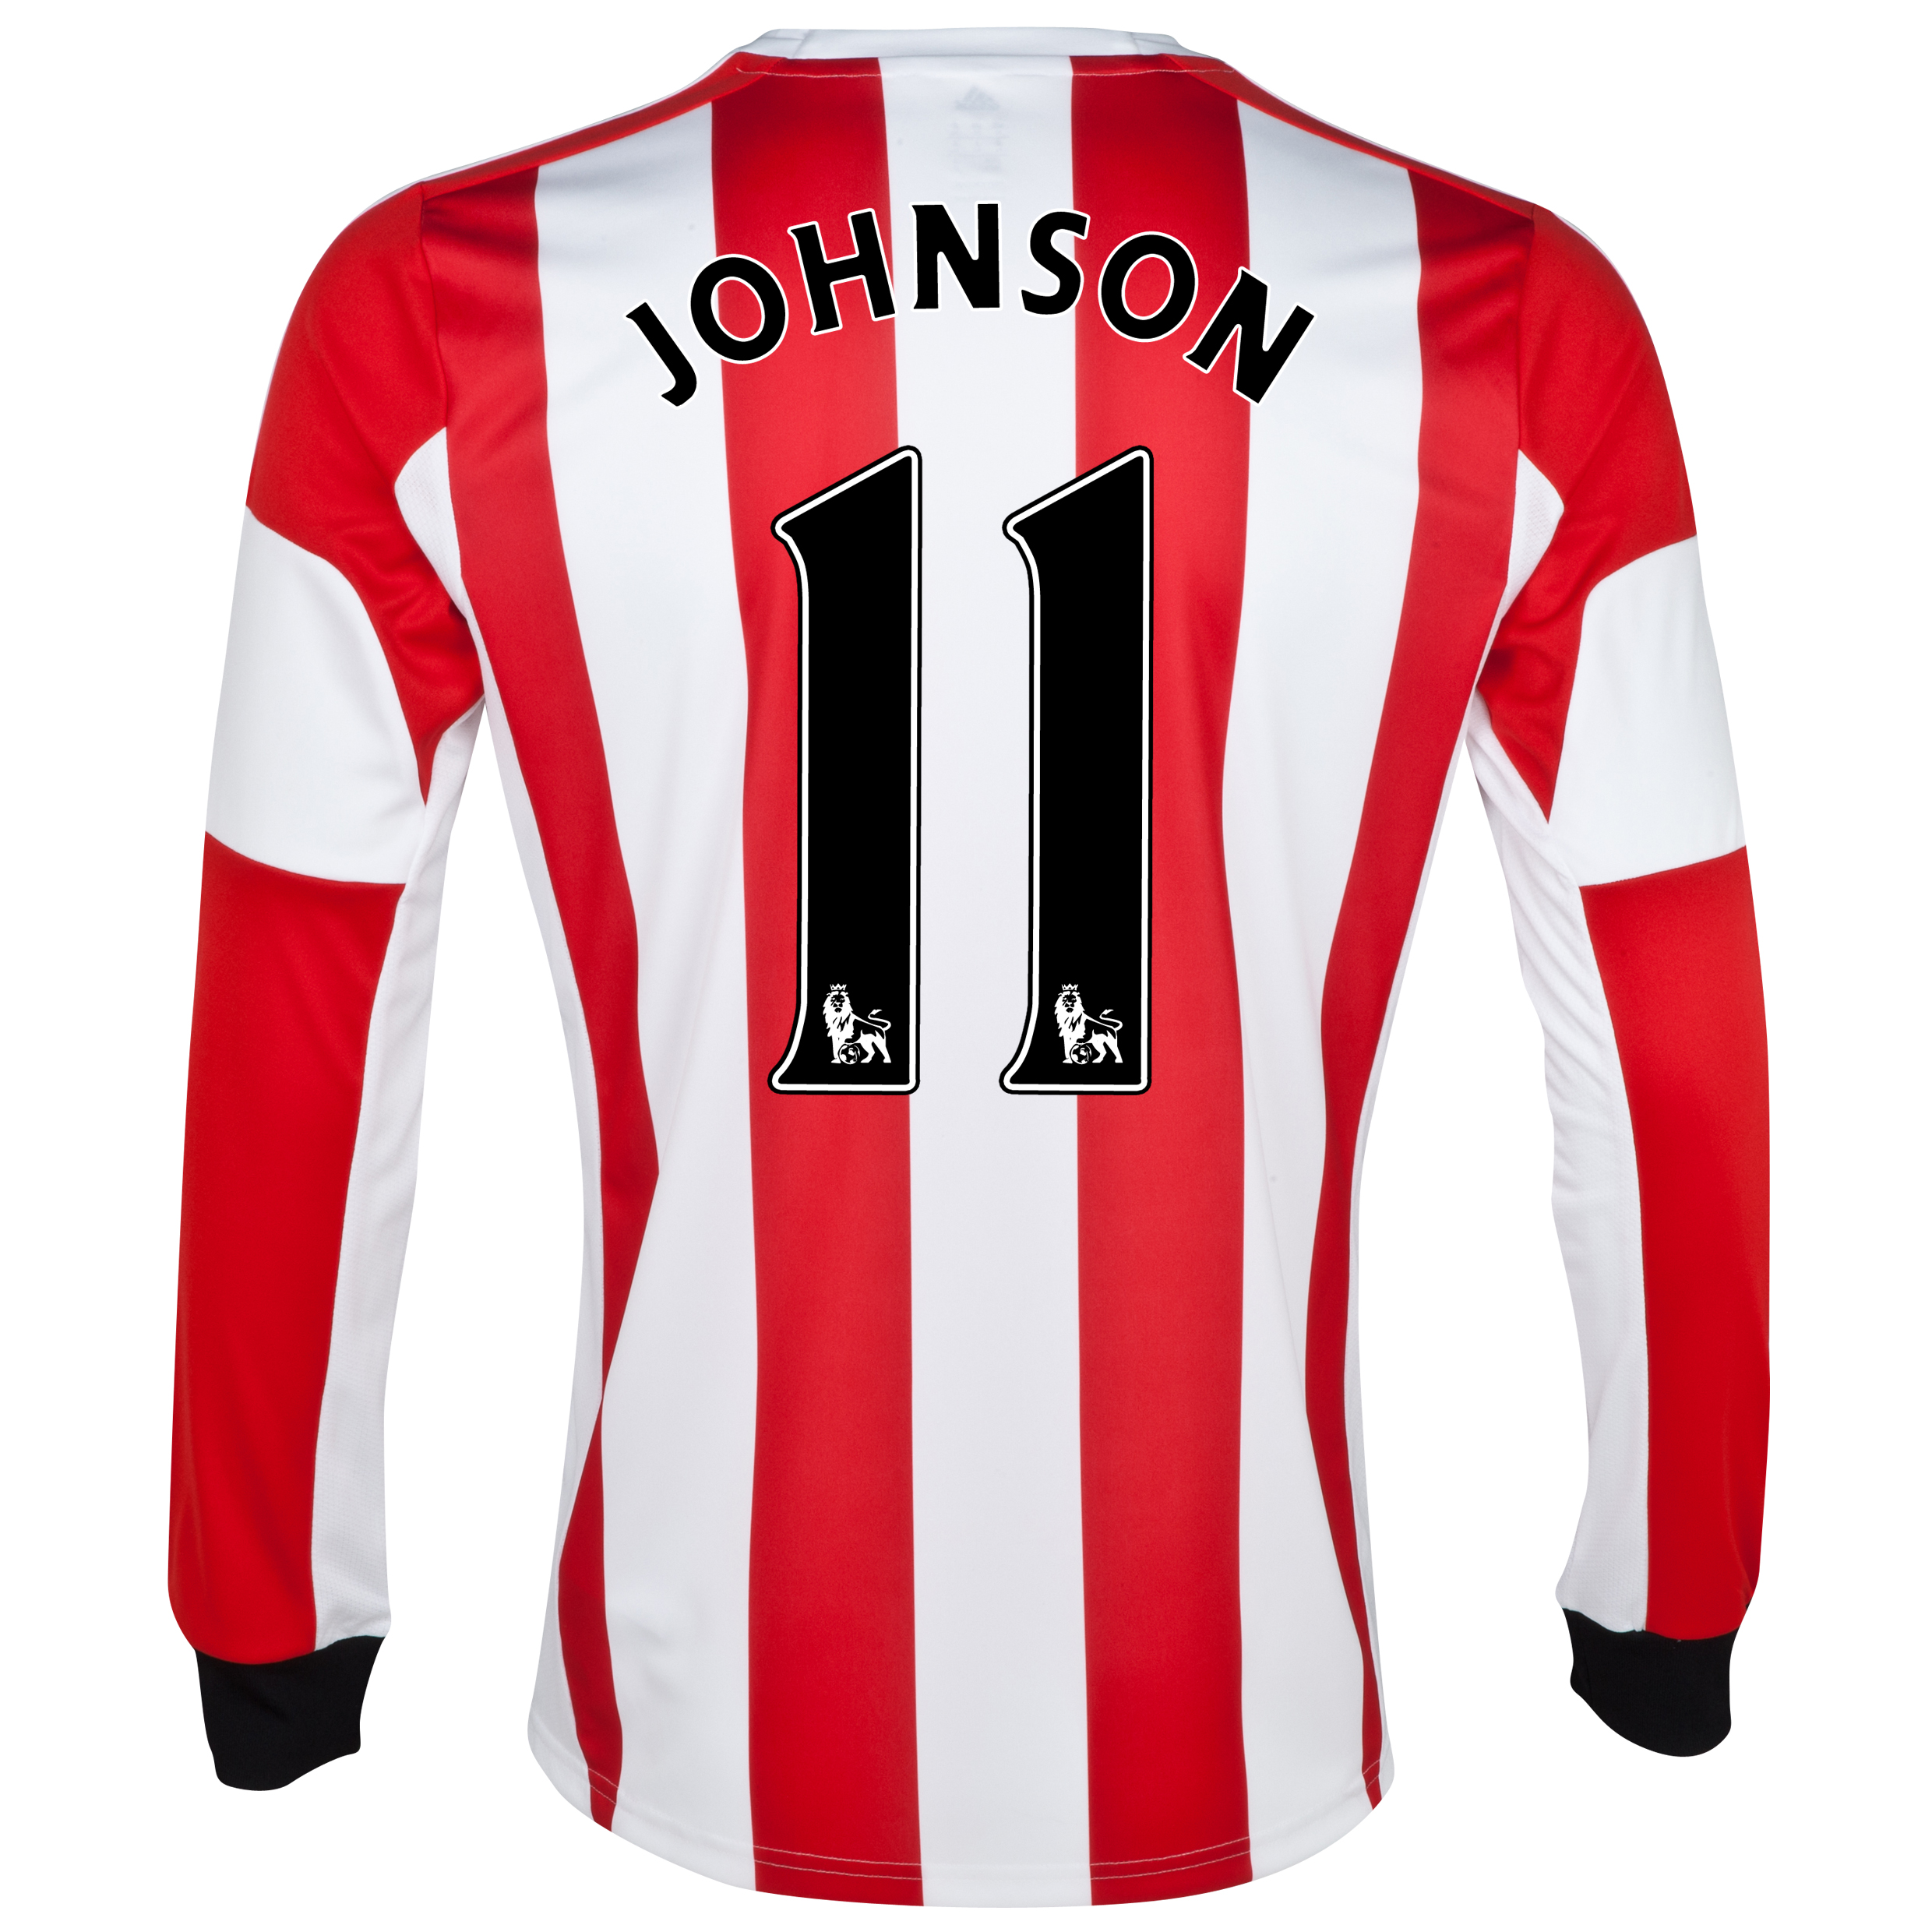 Sunderland Home Shirt 2013/14 - Long Sleeved with Johnson 11 printing